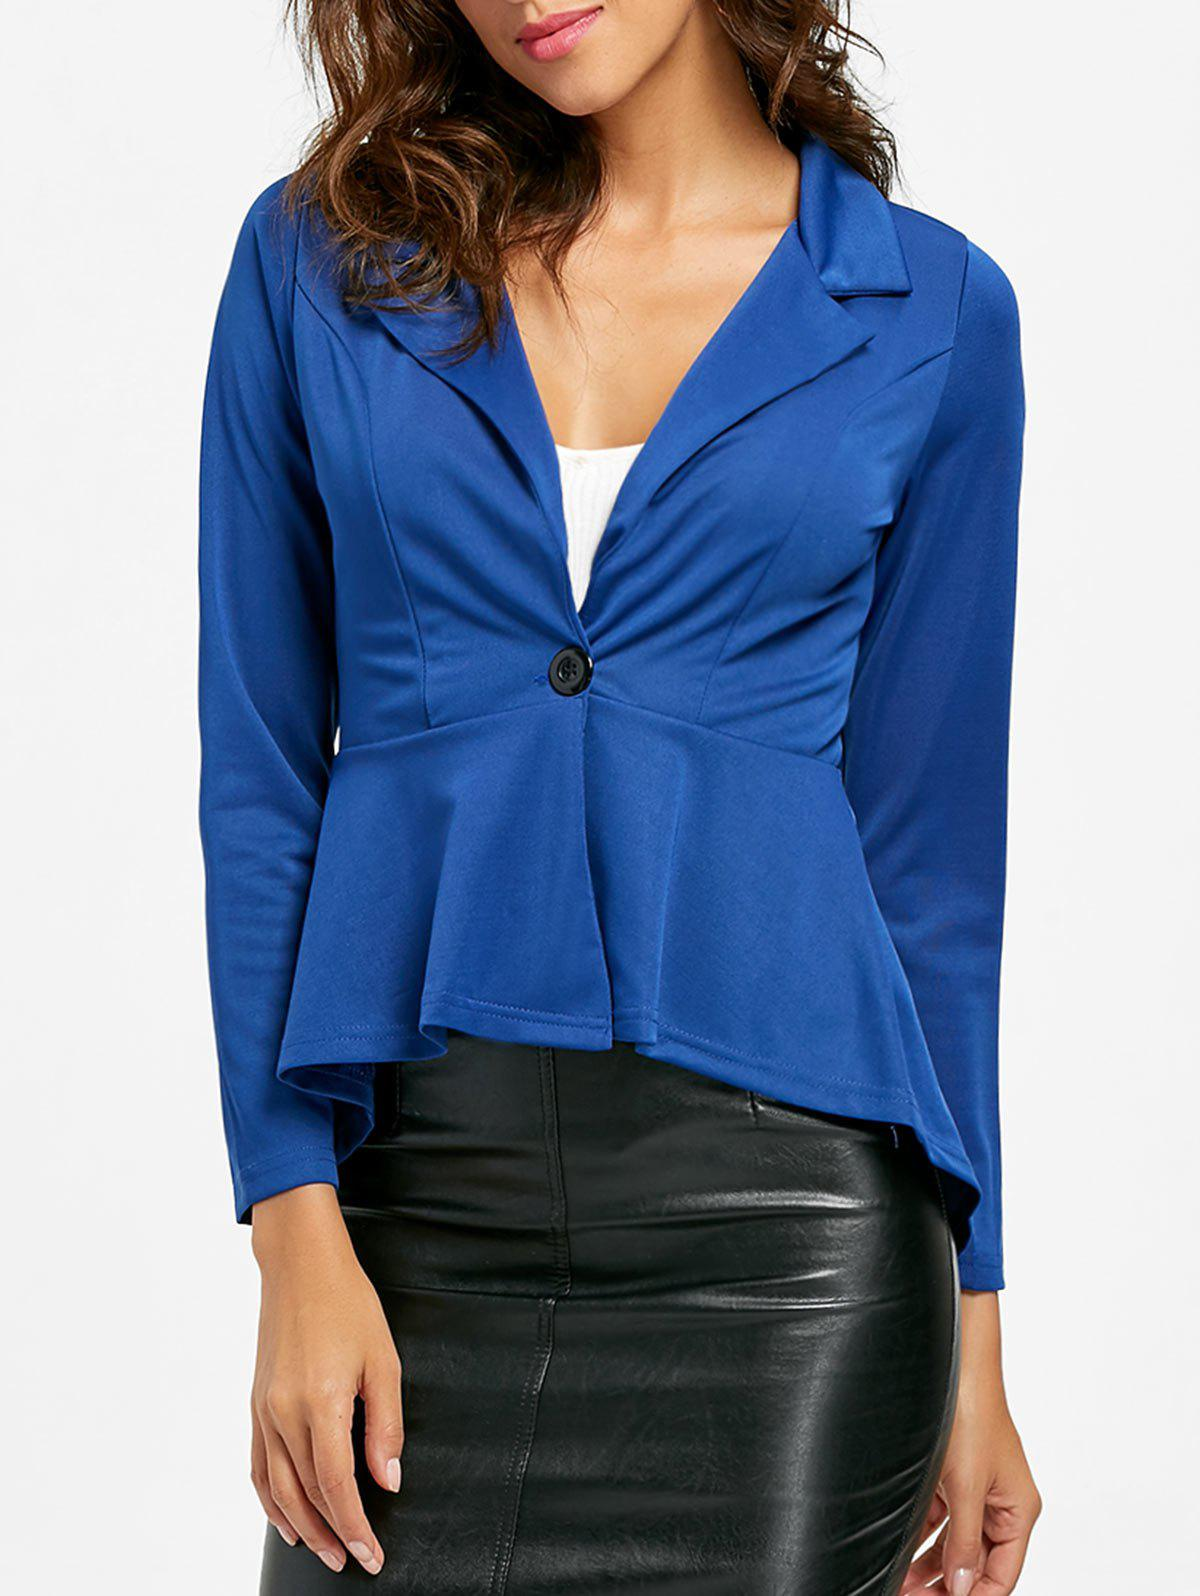 Flounce High Low One Button Blazer - BLUE S